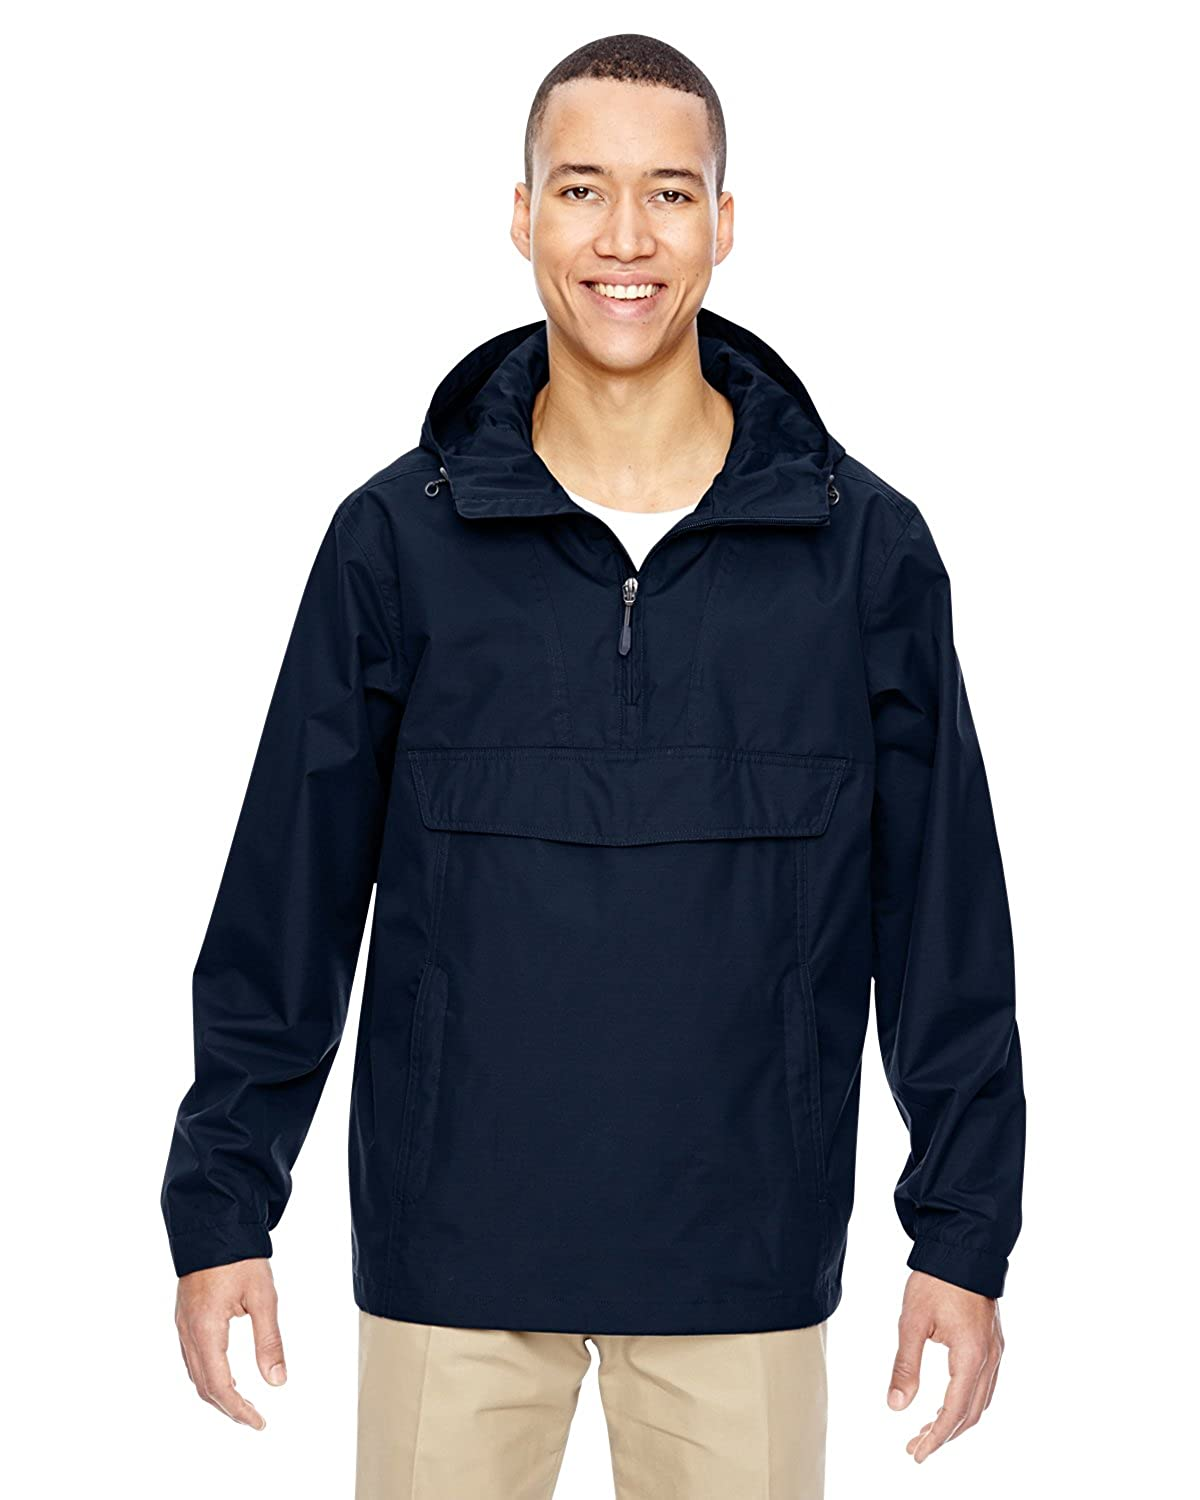 Men's Excursion Intrepid Lightweight Anorak NAVY 007 3XL